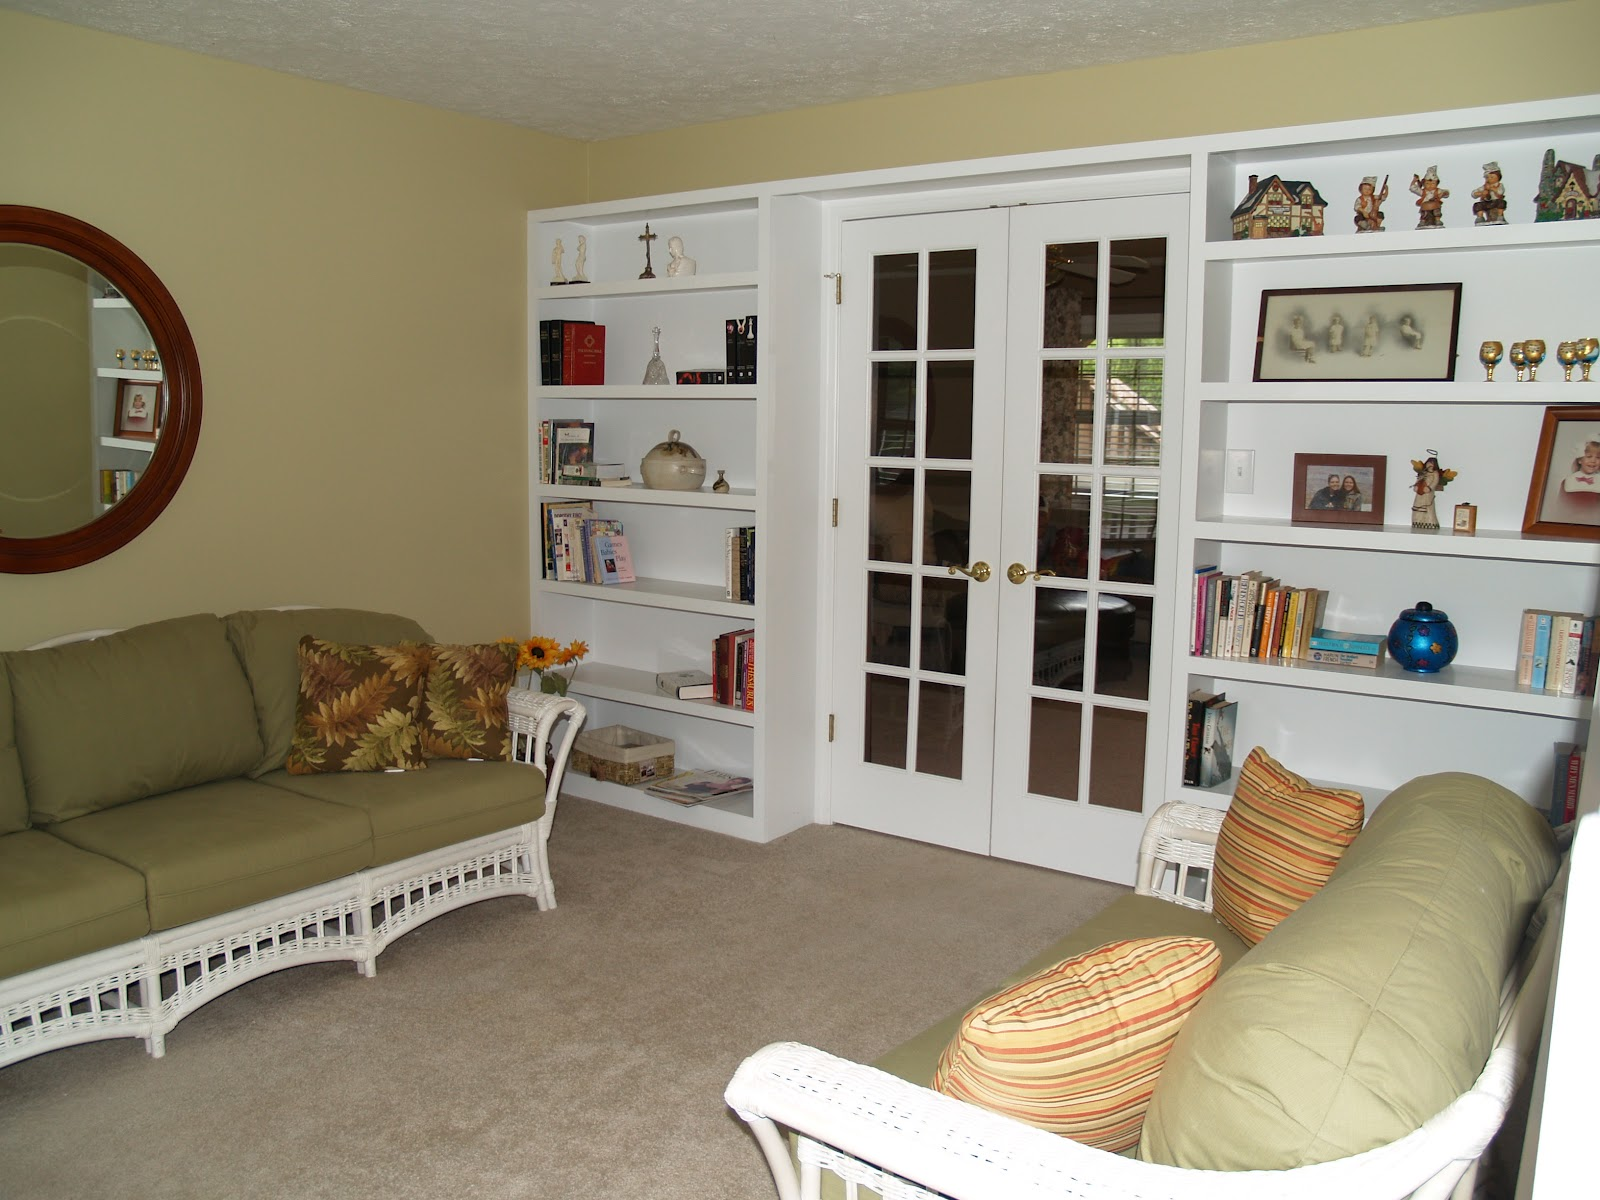 This Is The Den To Left Of Stairs French Doors Open Into Living Room May Be My Favorite In House